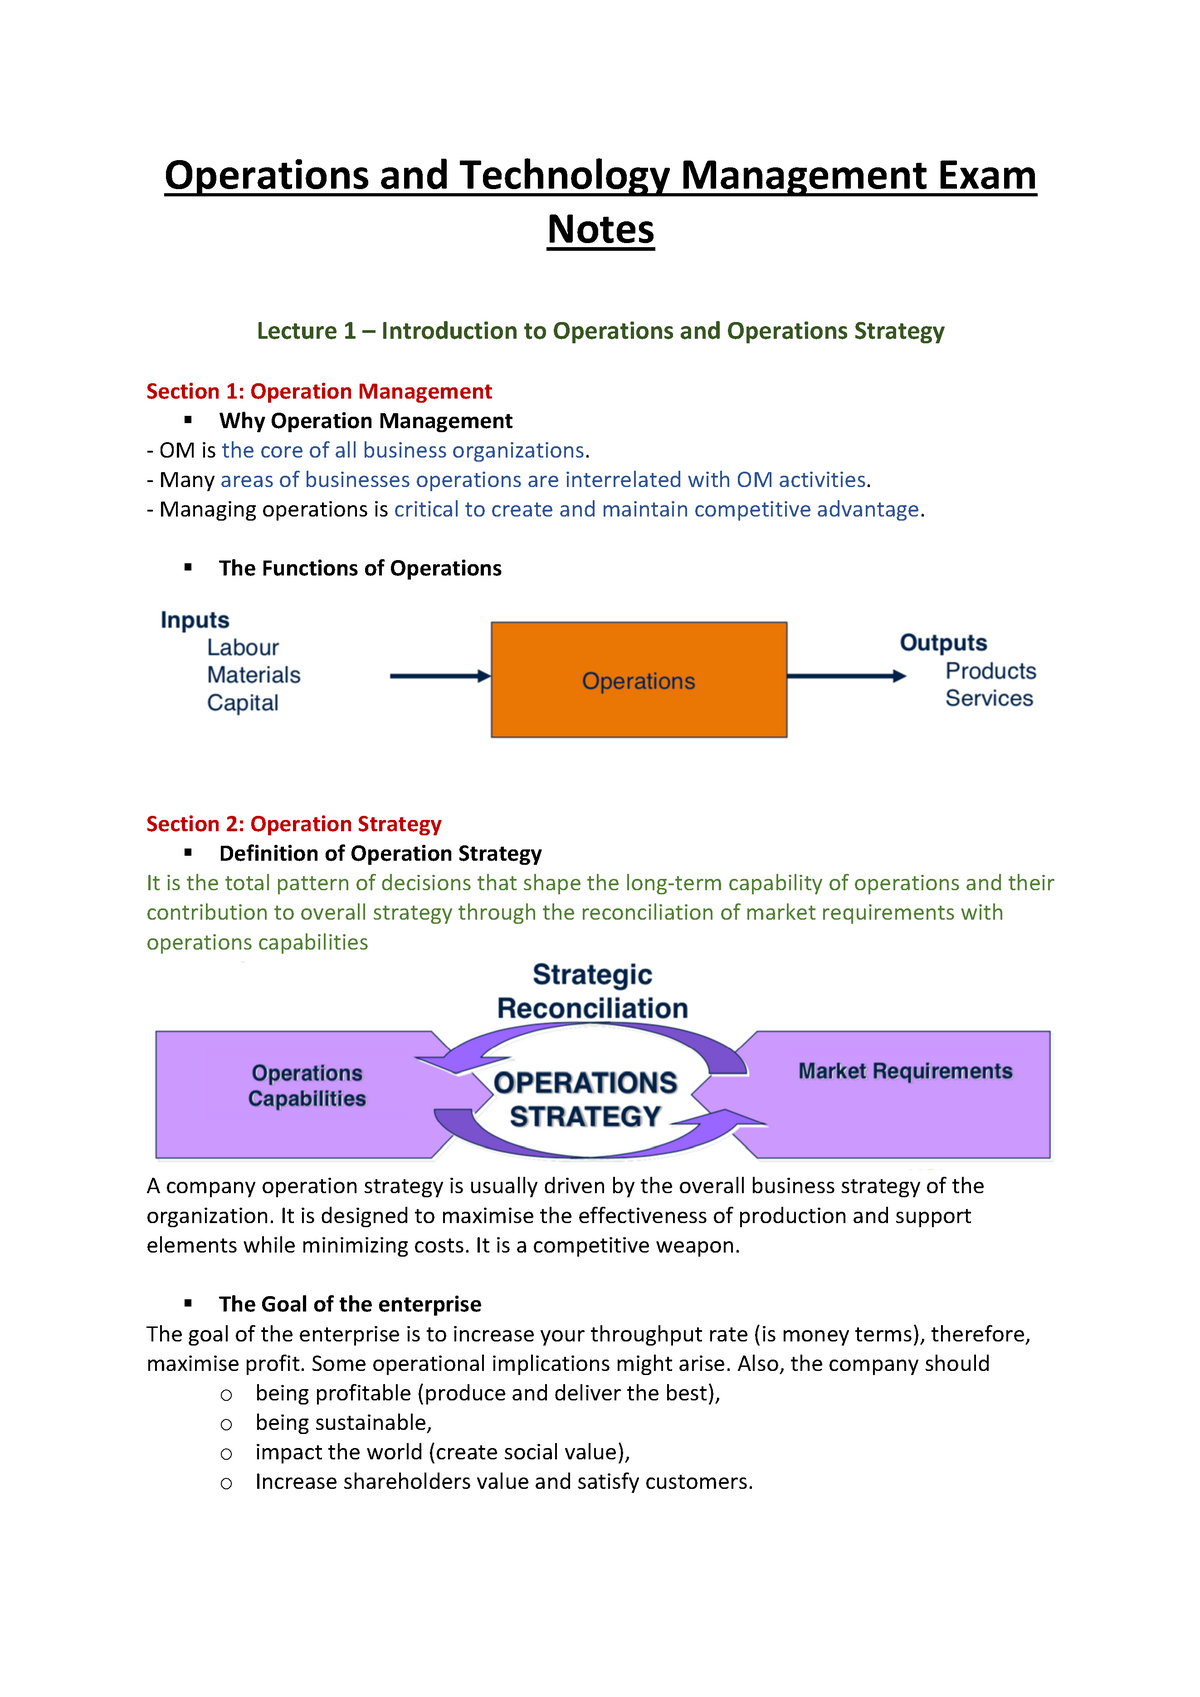 OTM Exam Notes - MSING715: Operations and Technology Management